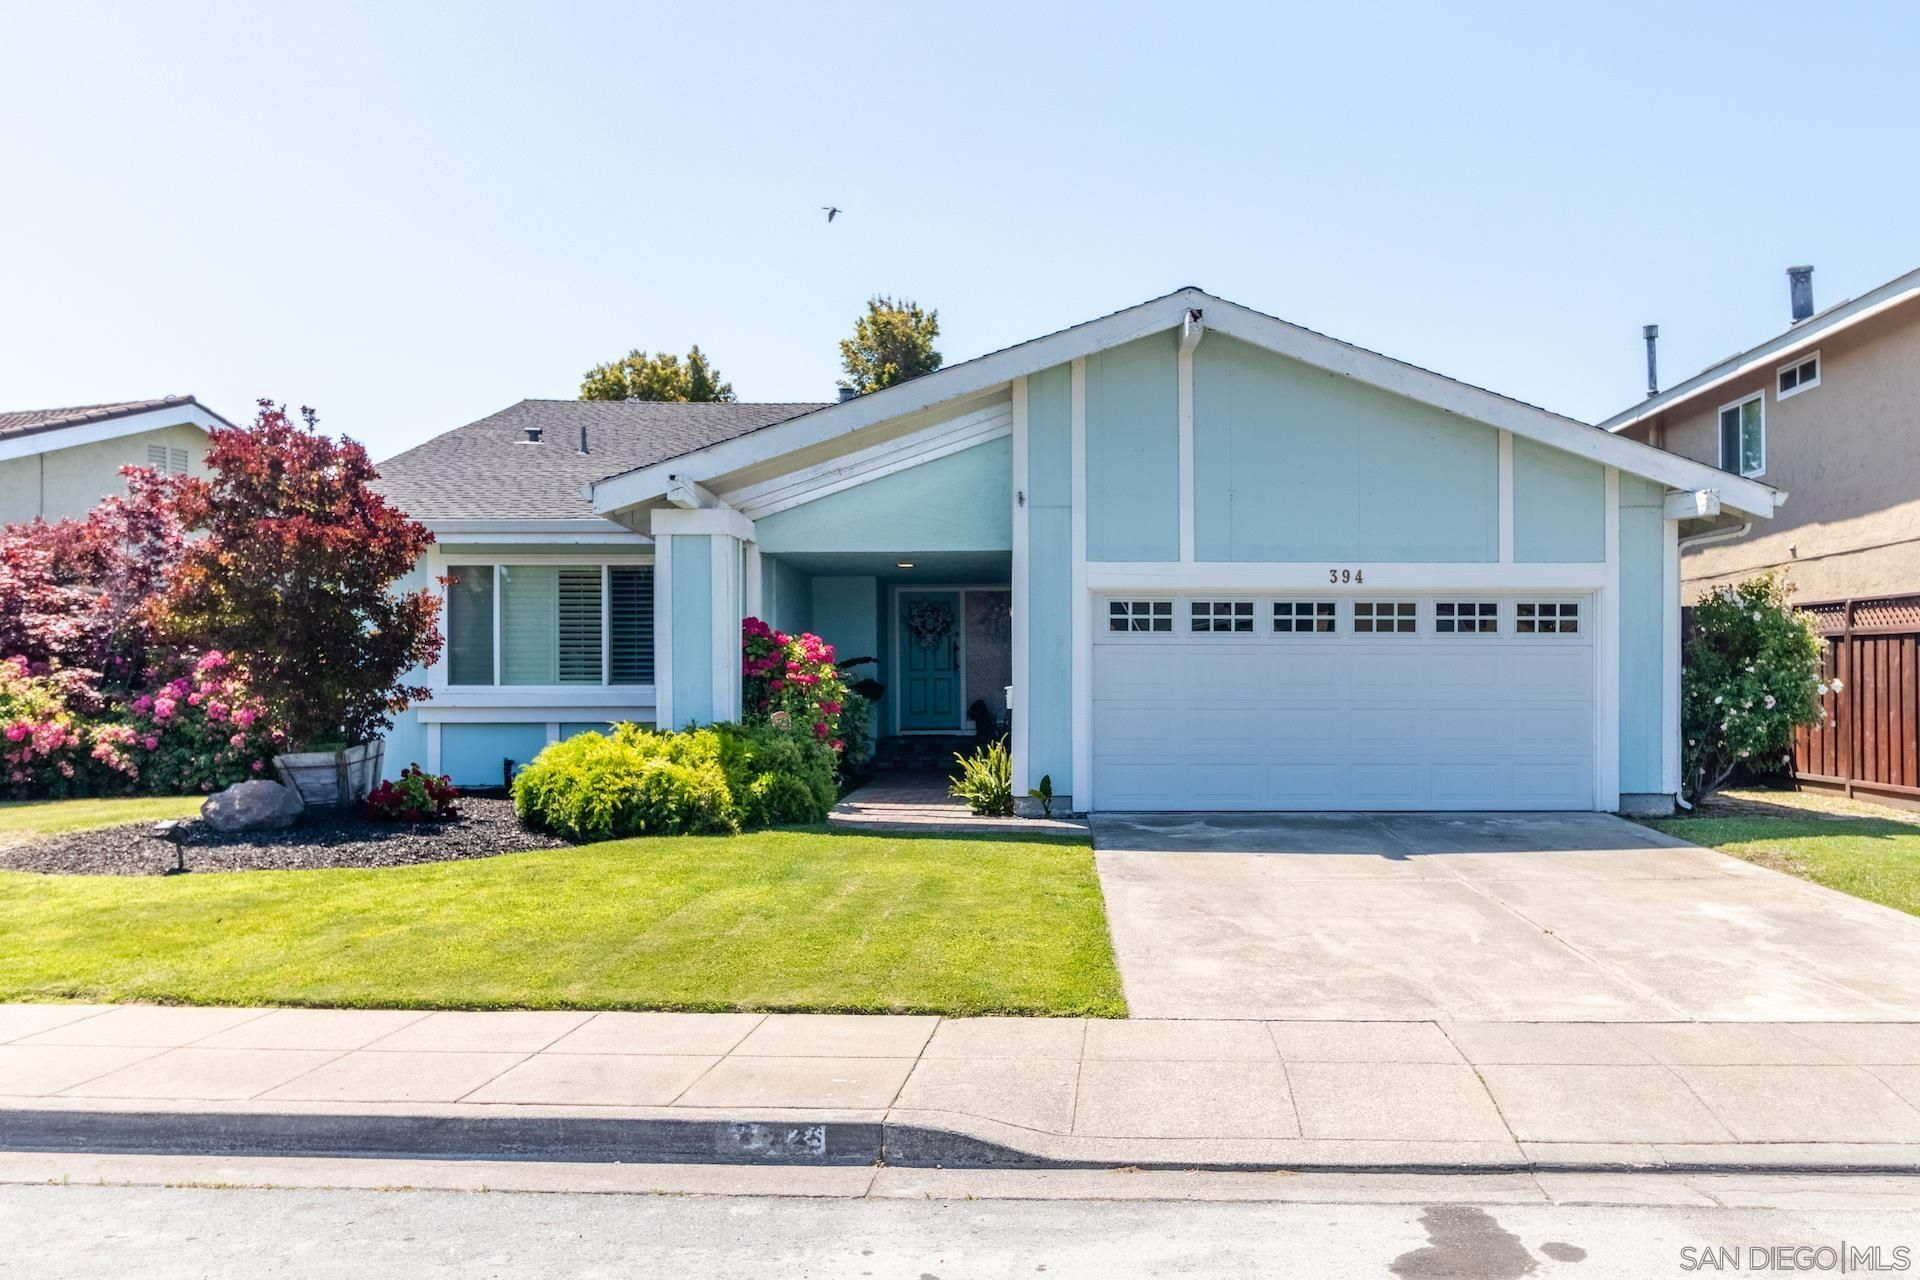 Main Photo: House for sale : 3 bedrooms : 394 Port Royal in Foster City